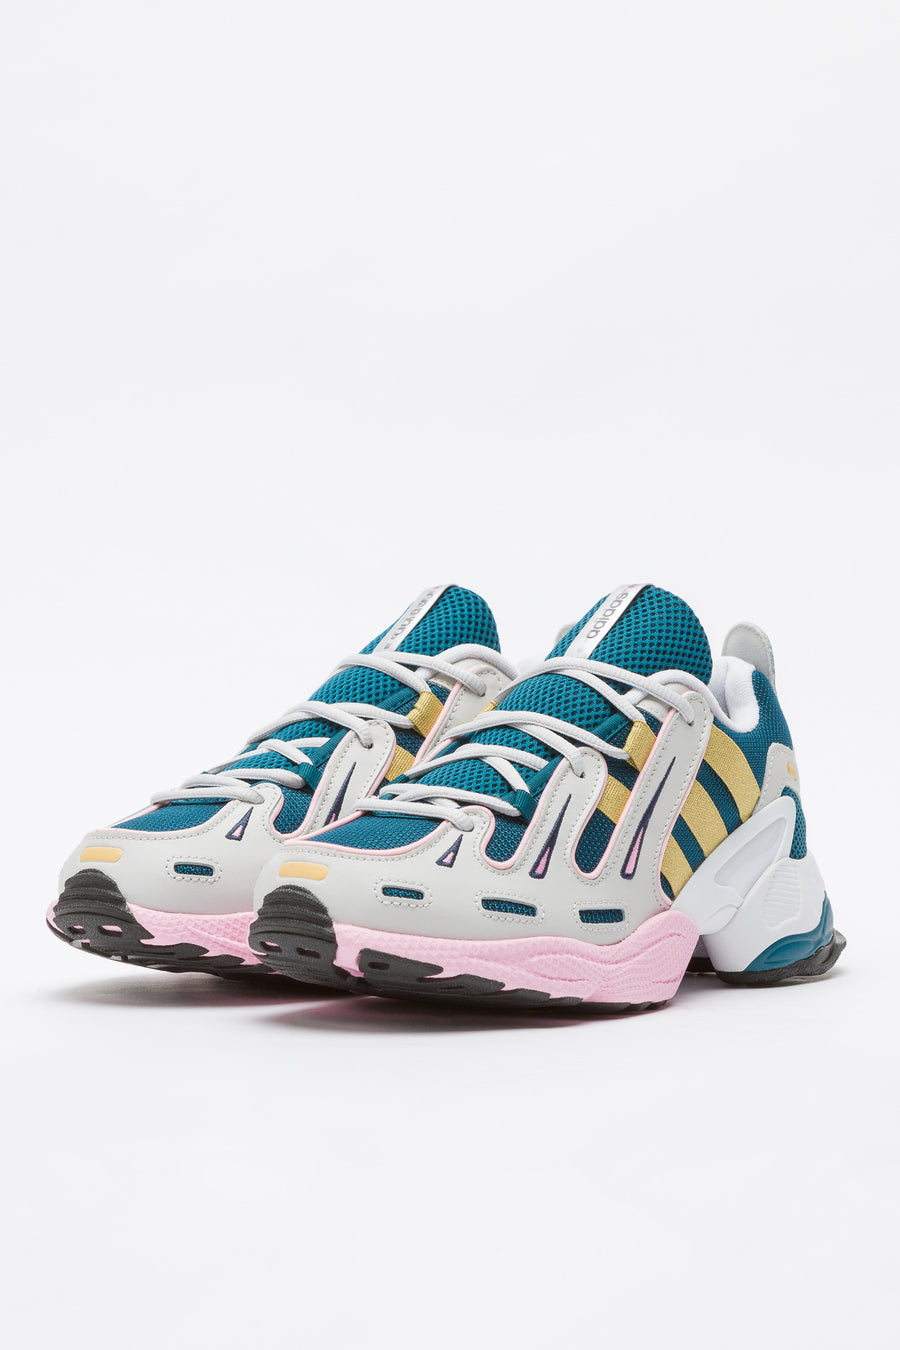 adidas EQT Gazelle W in Tech Mineral/Gold/Pink - Notre